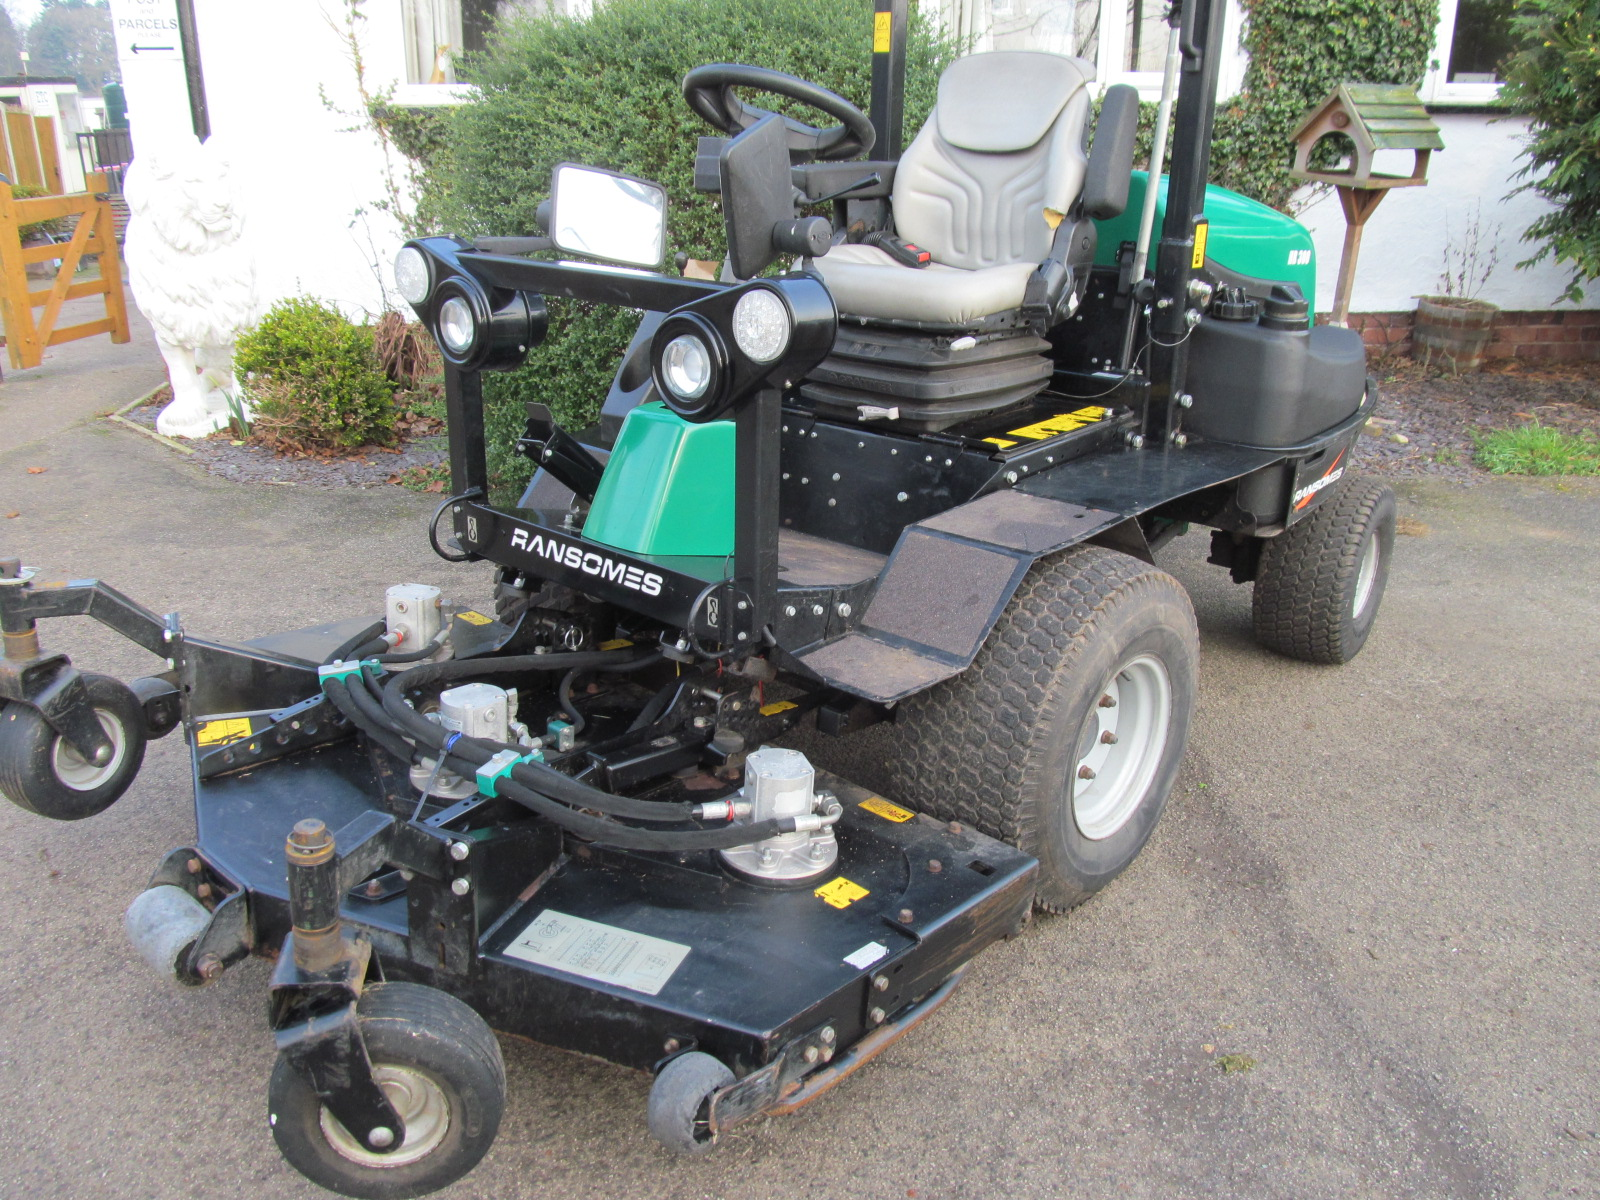 Ransomes Outfront Hr300t Rotary Mower Etc Grass Machinery